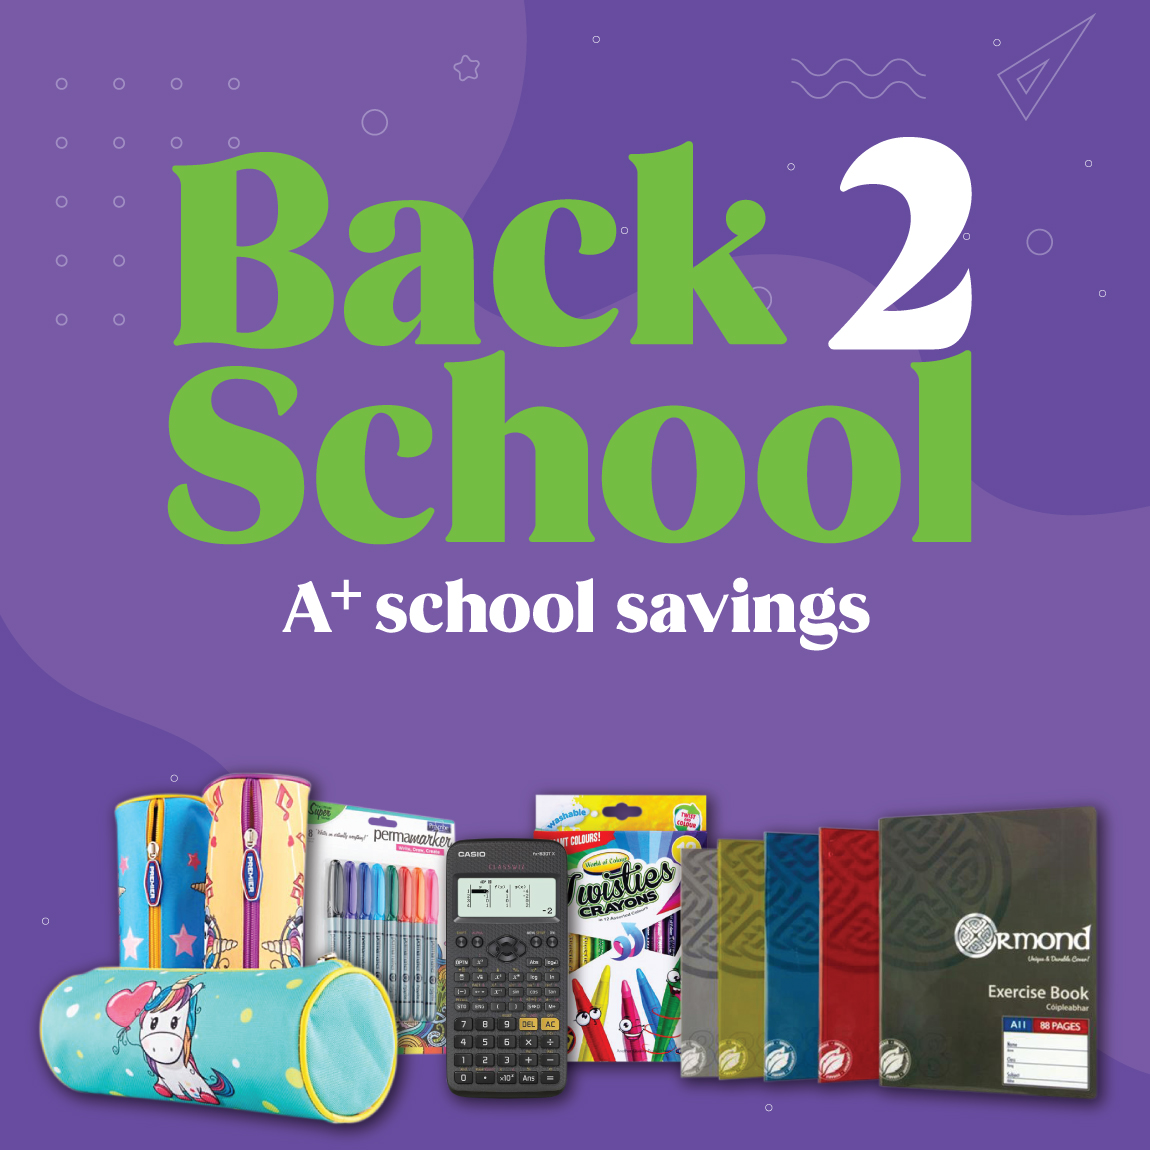 Back to School value  | Back 2 School | Writeaway.ie